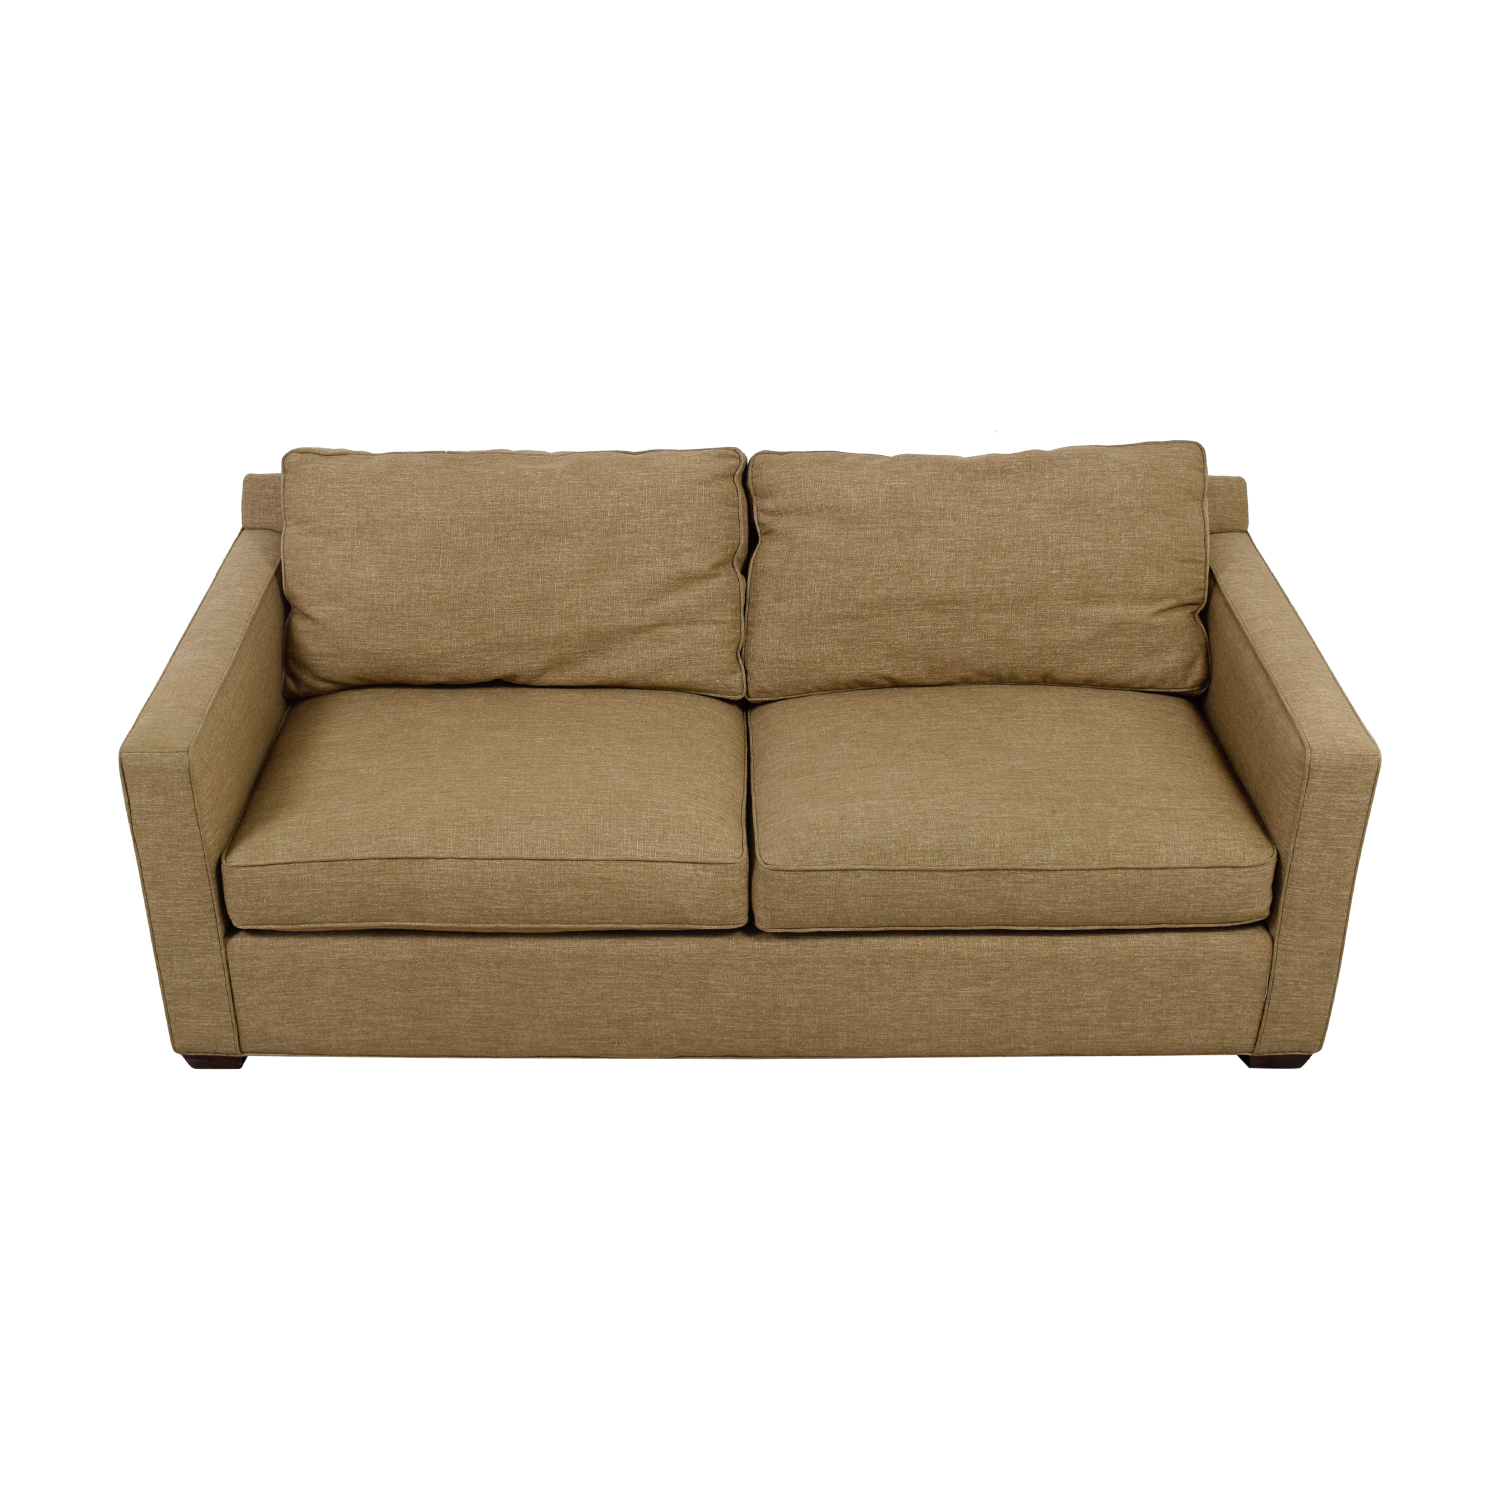 shop Crate & Barrel Crate & Barrel Davis Tan Two-Cushion Sofa online